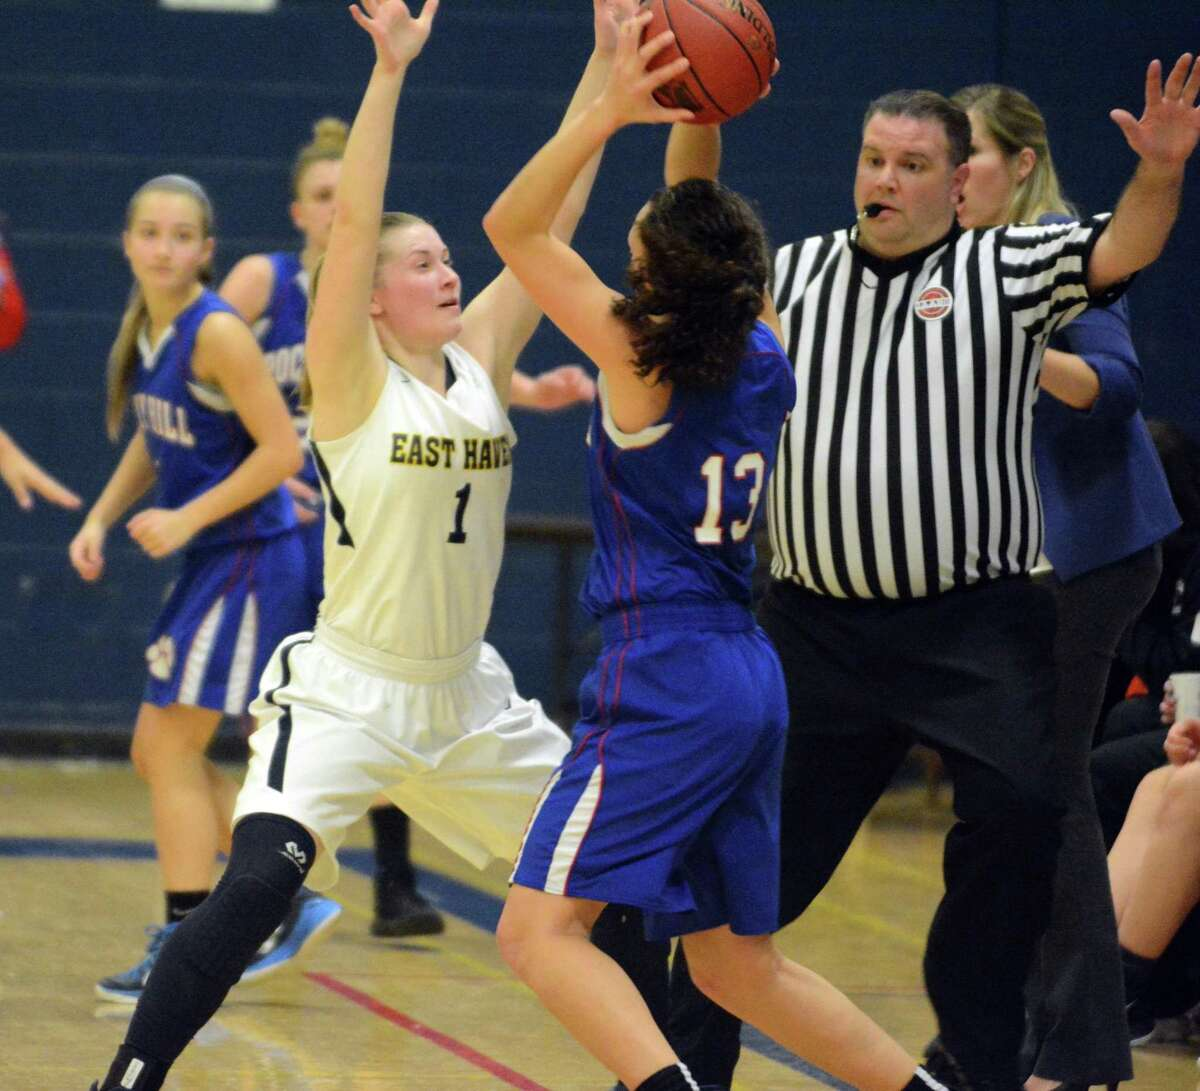 East Haven's Kylie Schlottman, left, defends as Rocky Hill's Grace Moore looks to pass on Friday.